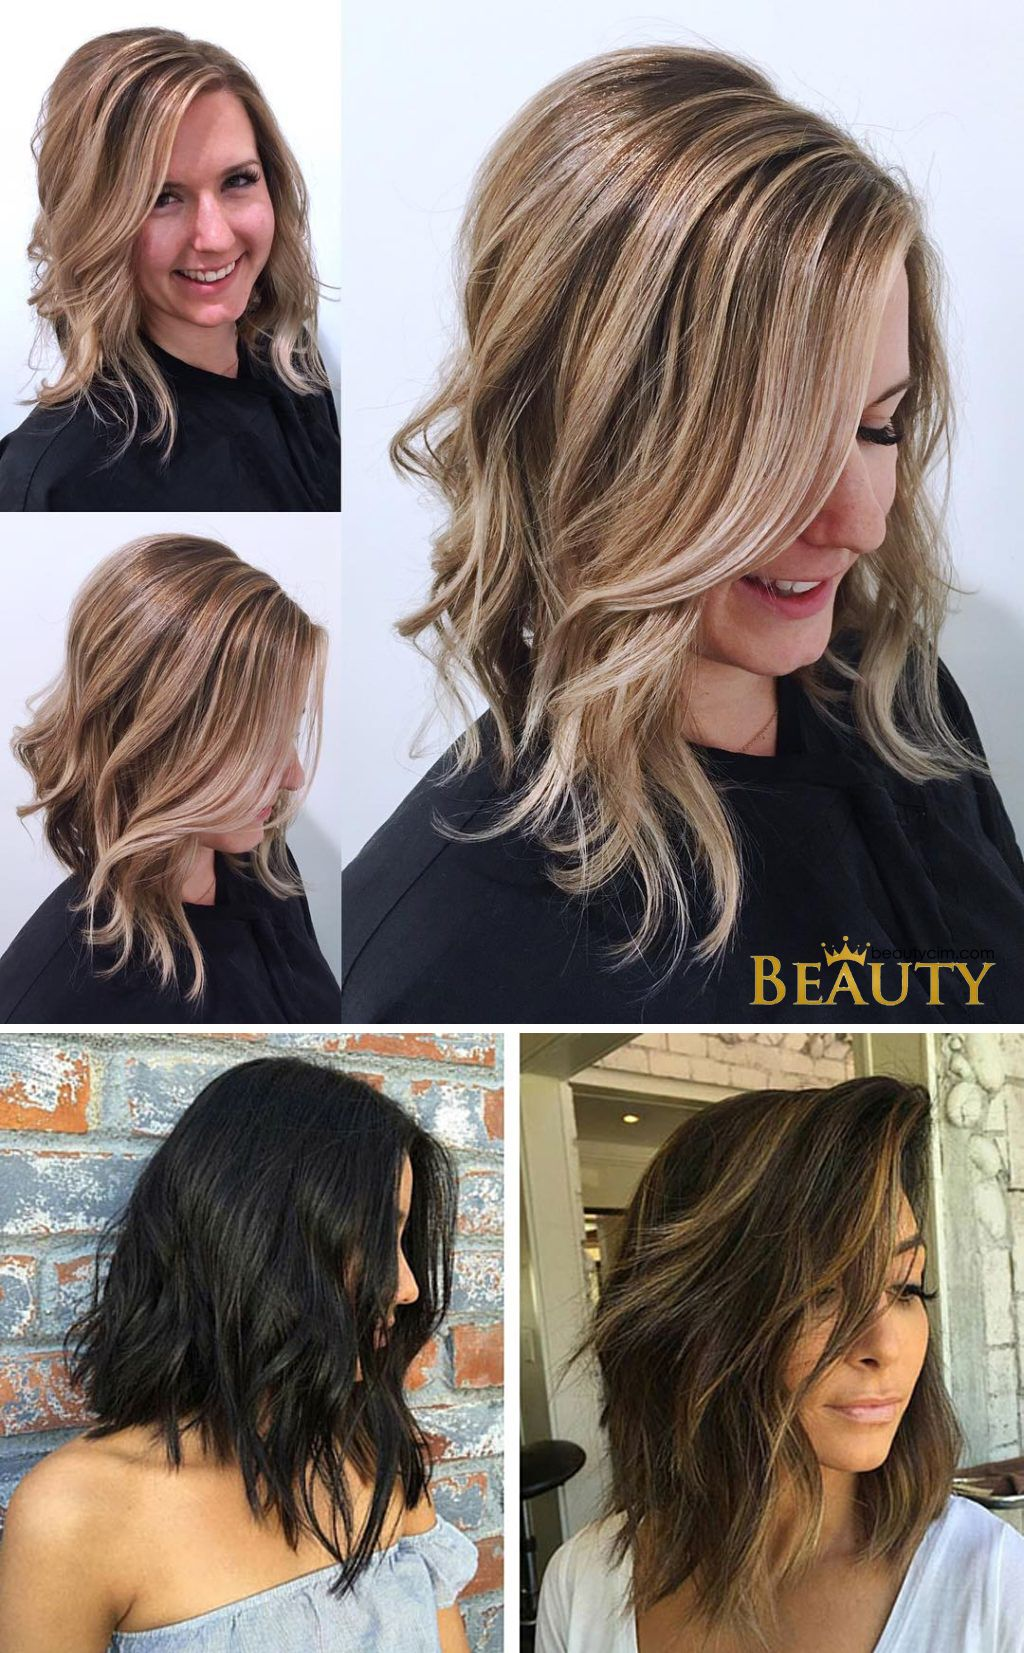 40 Best Short Hairstyles For Fine Hair 2021 Short Thin Hair Hair Styles Thin Hair Haircuts